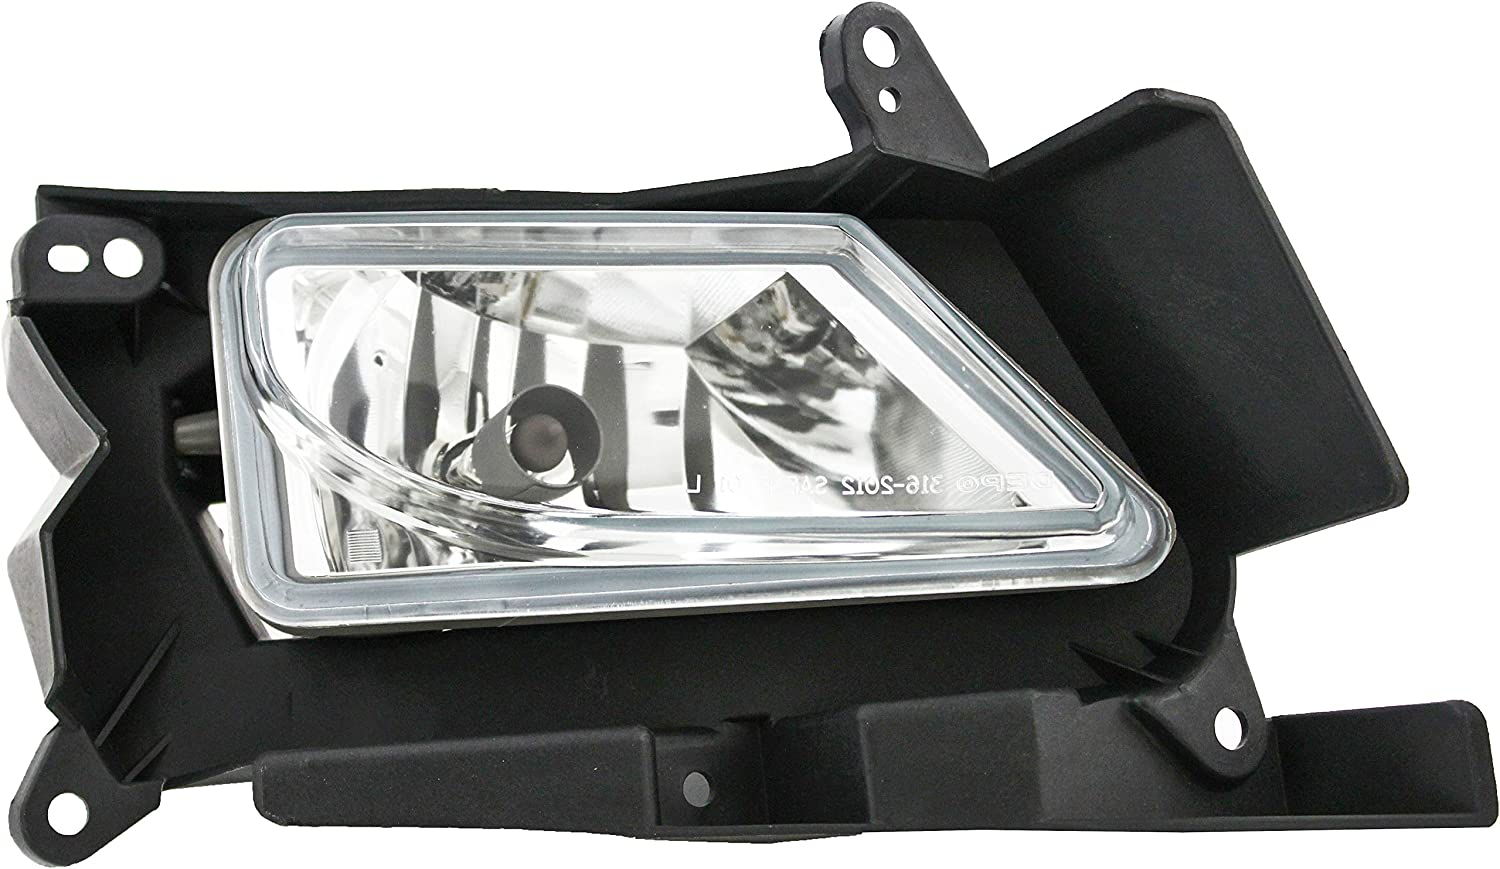 JP Auto Front Fog Light Lamp 流行のアイテム Compatible Eng 3 With 2.5L 新品■送料無料■ 20 Mazda